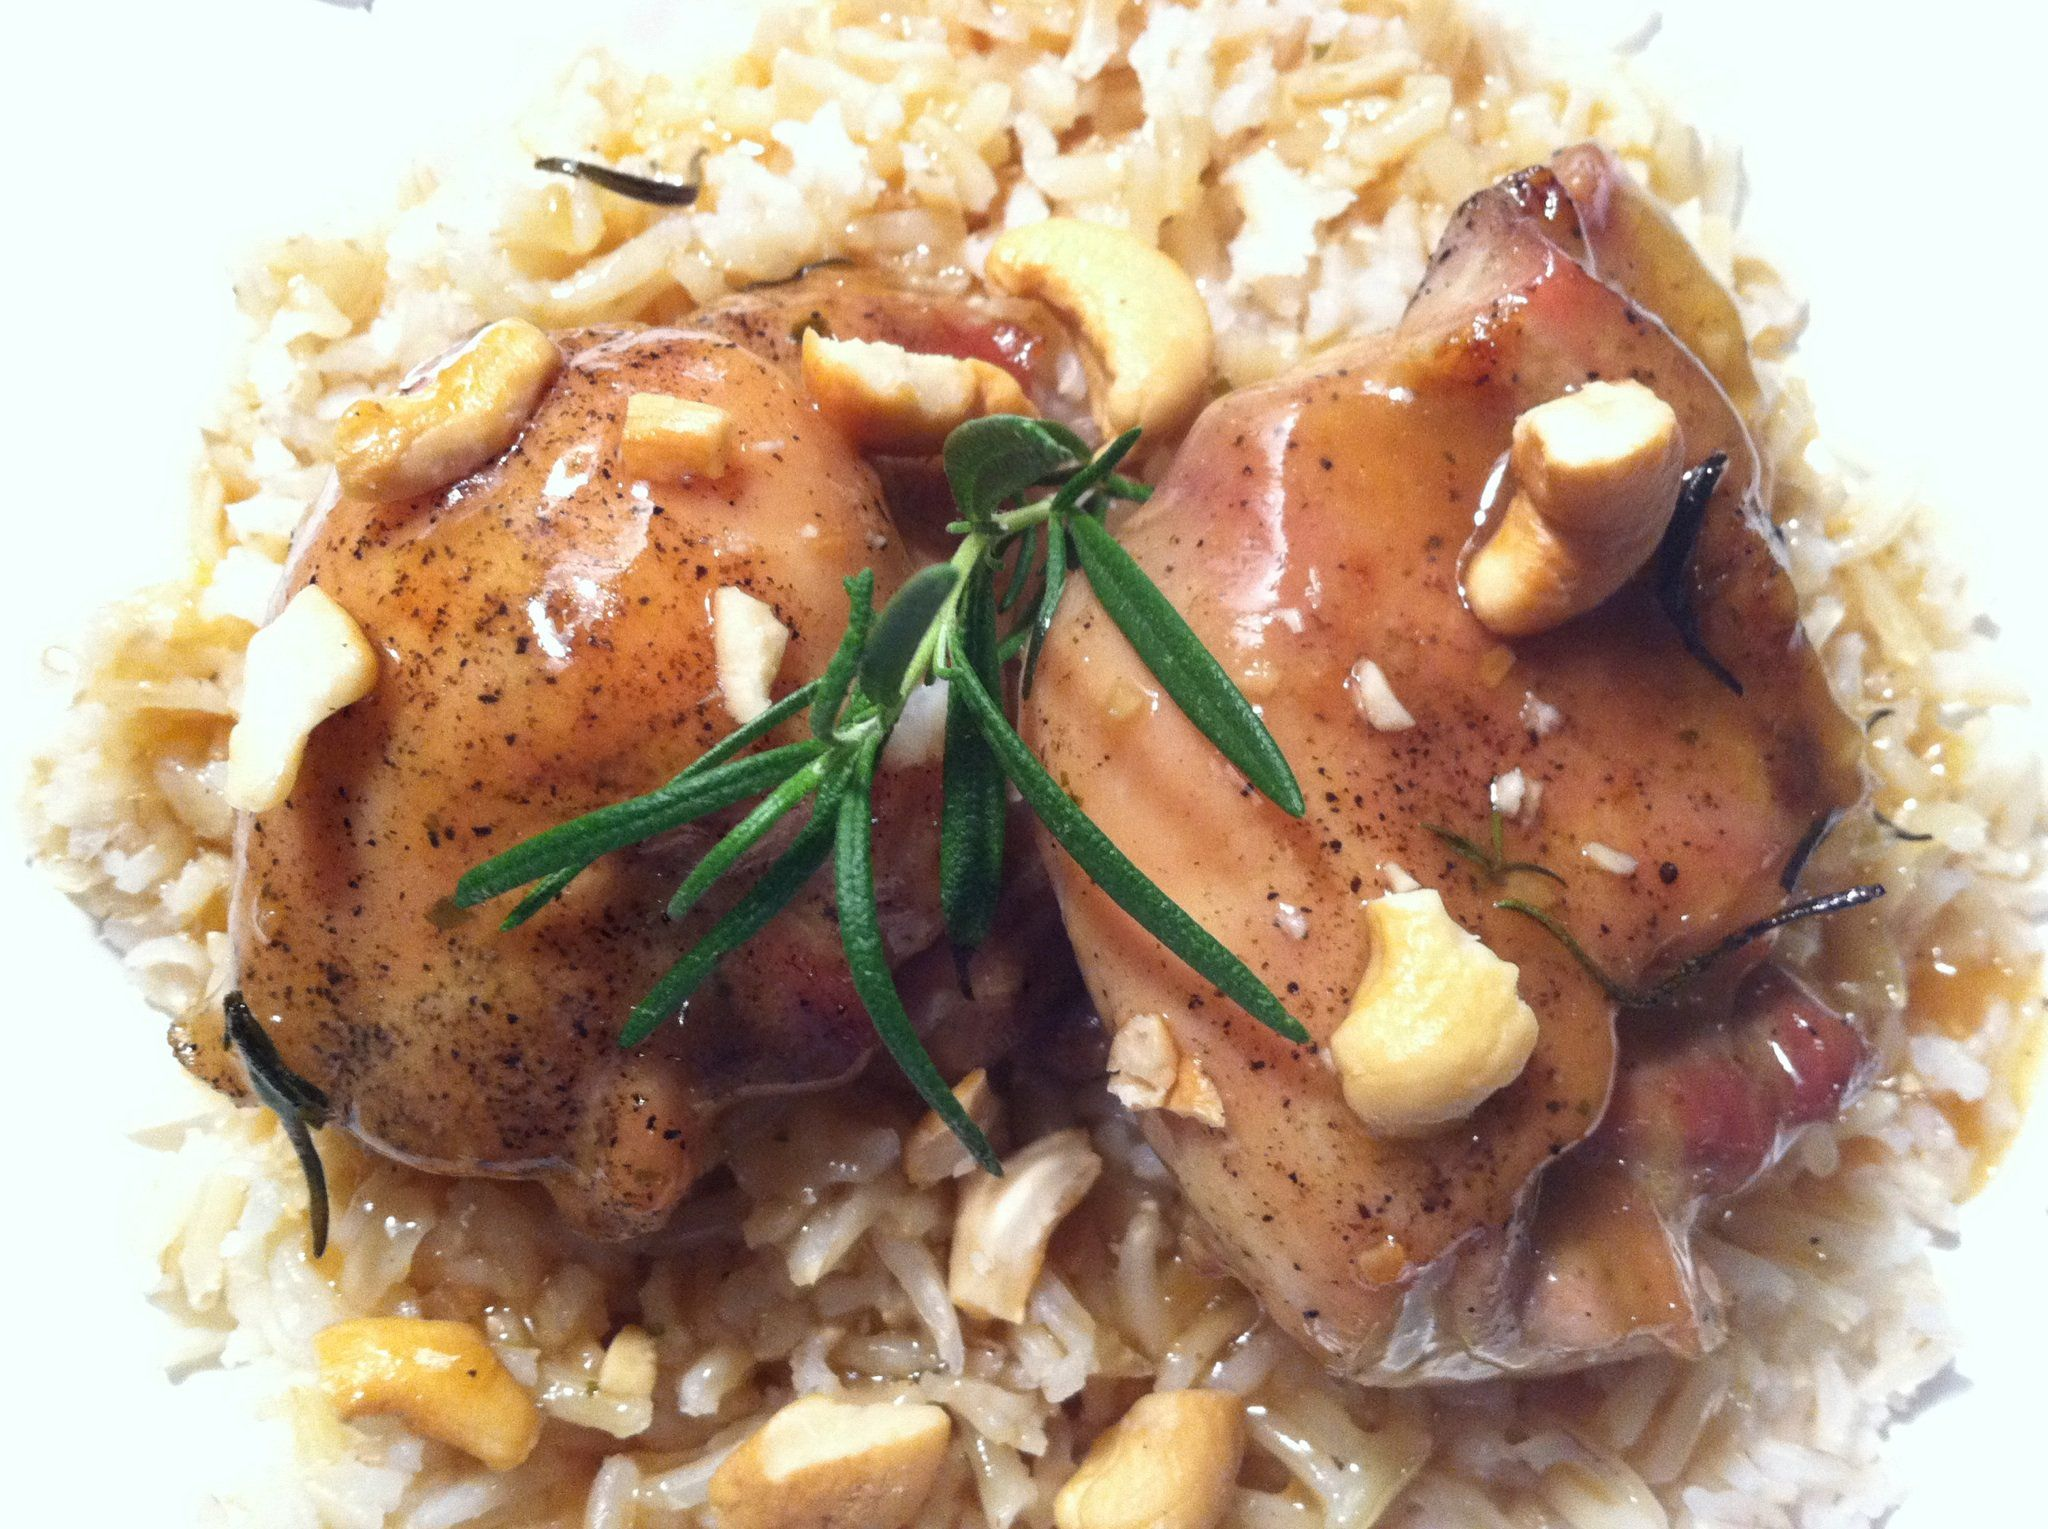 Pin by Tiffany Calkins Leiter on My Recipes | Pinterest